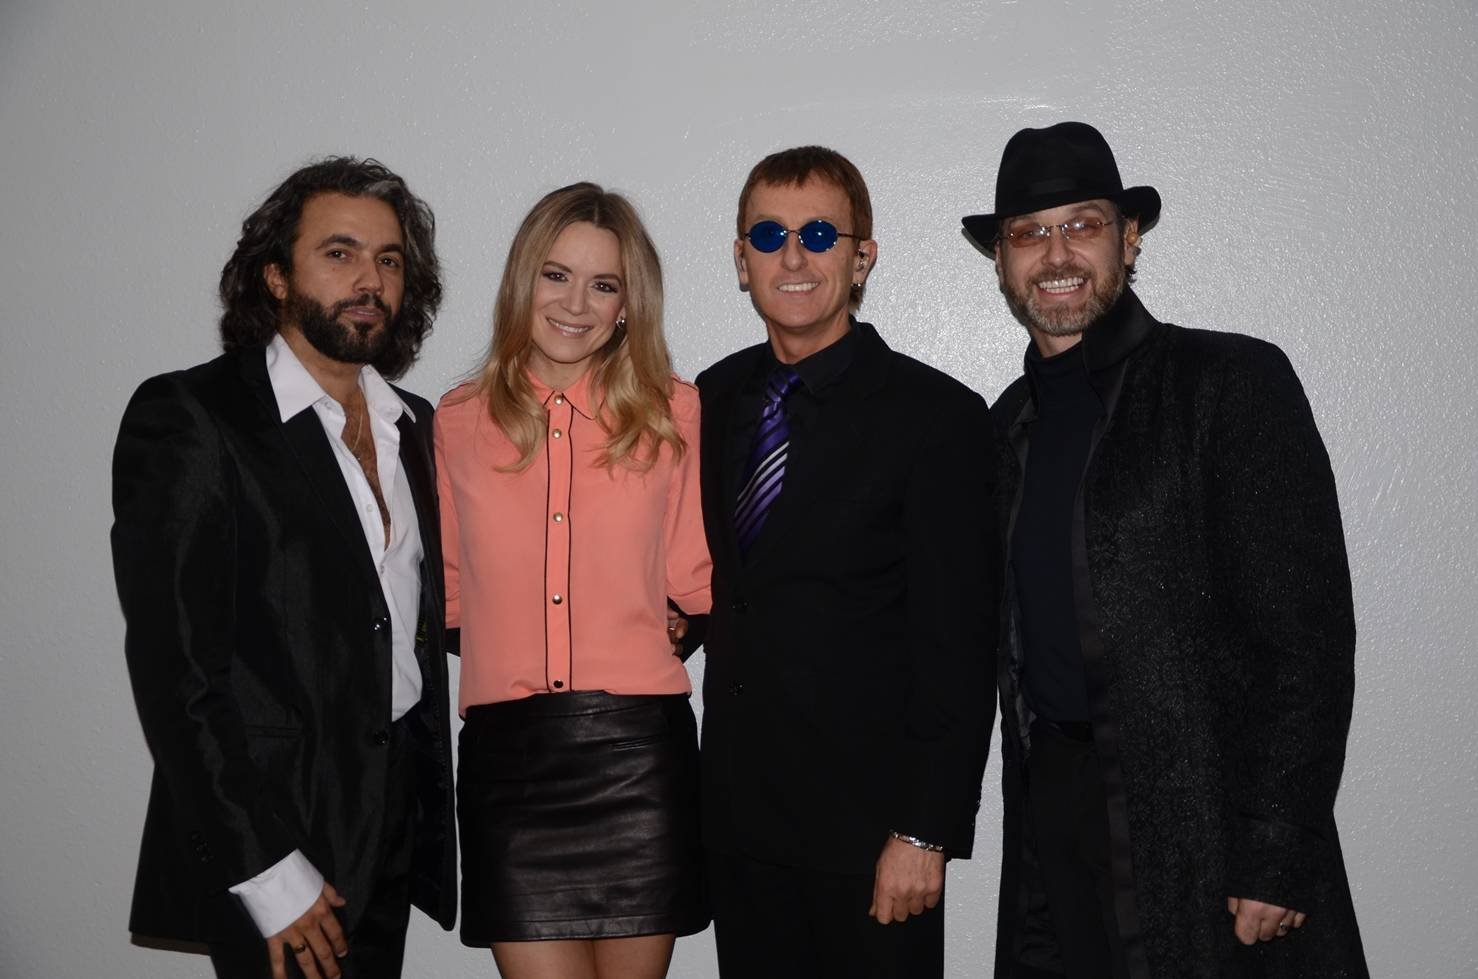 Veronic DiCaire and The Australian Bee Gees 11.21.13